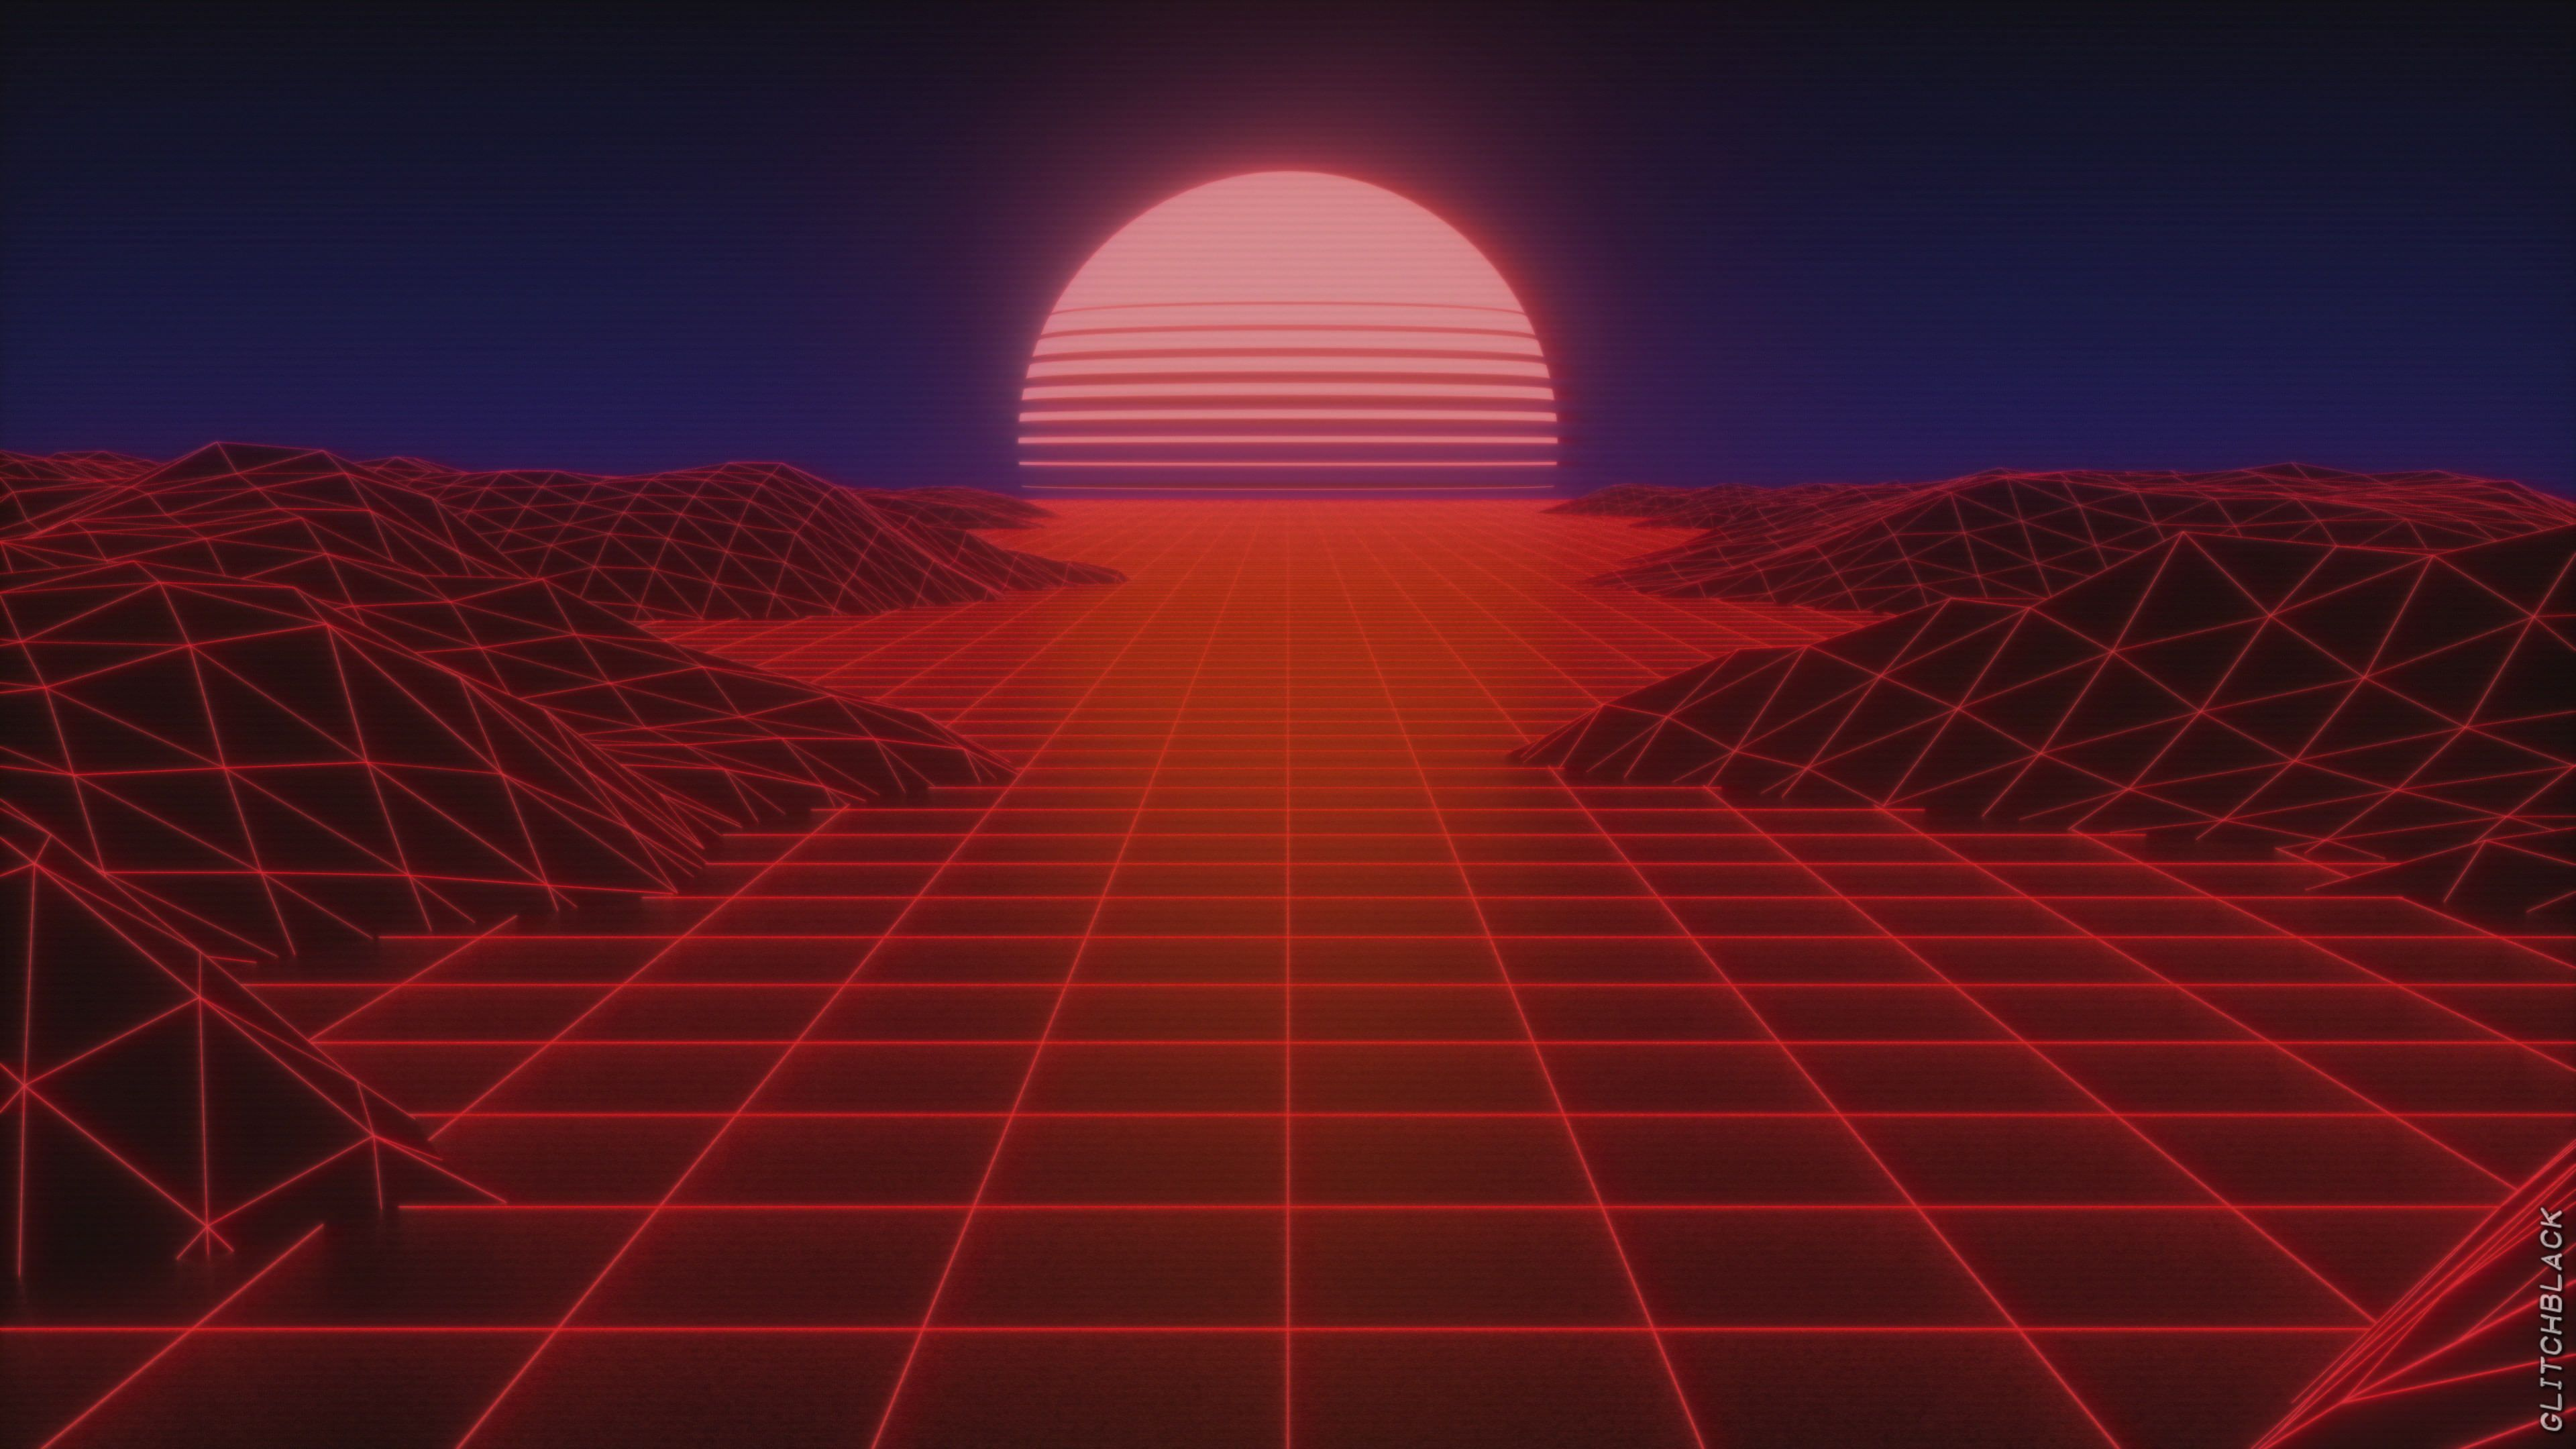 Synthwave Sun Vaporwave 4k Wallpaper Hdwallpaper Desktop Aesthetic Wallpapers Glitch Wallpaper Synthwave